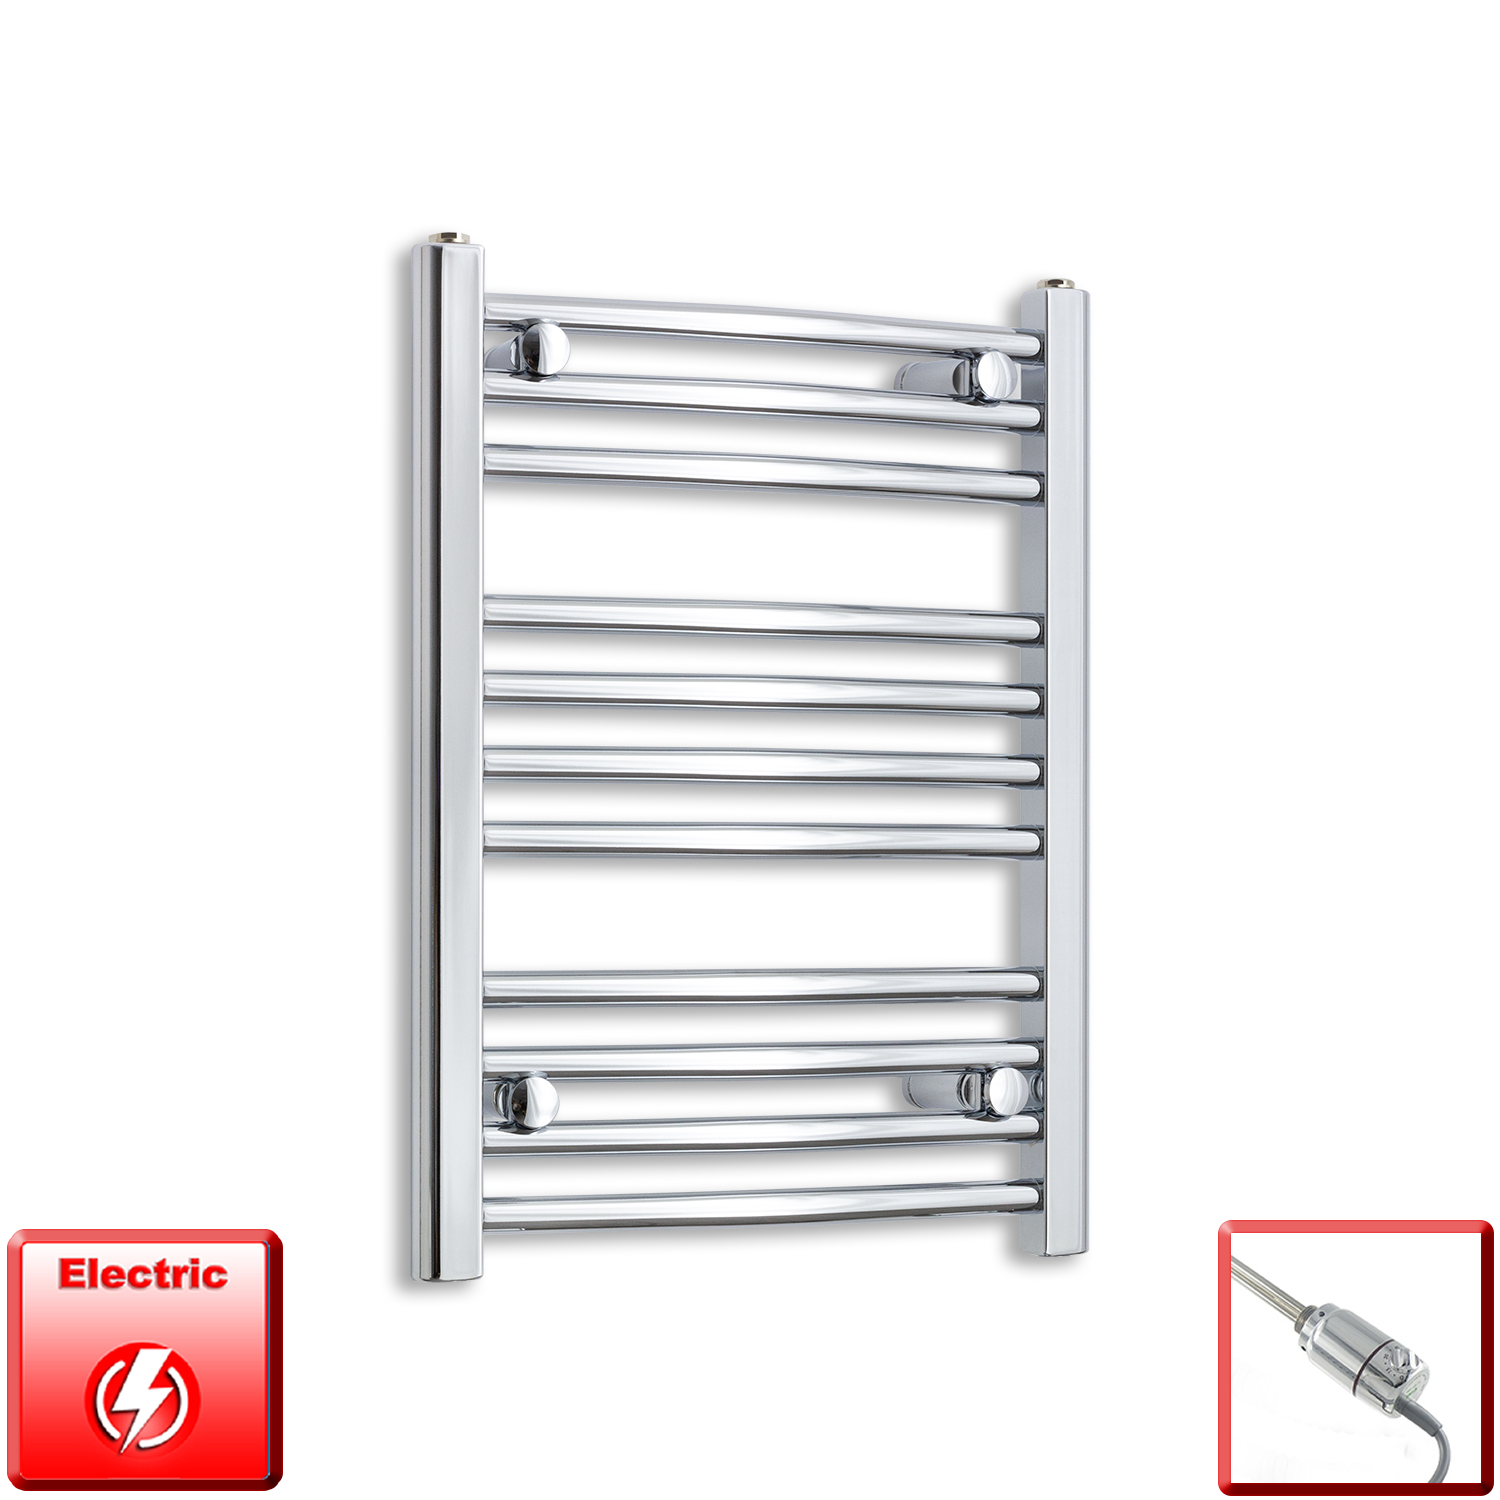 500mm Wide 600mm High Flat Or Curved Chrome Pre-Filled Electric Heated Towel Rail Radiator HTR,GT Thermostatic / Straight